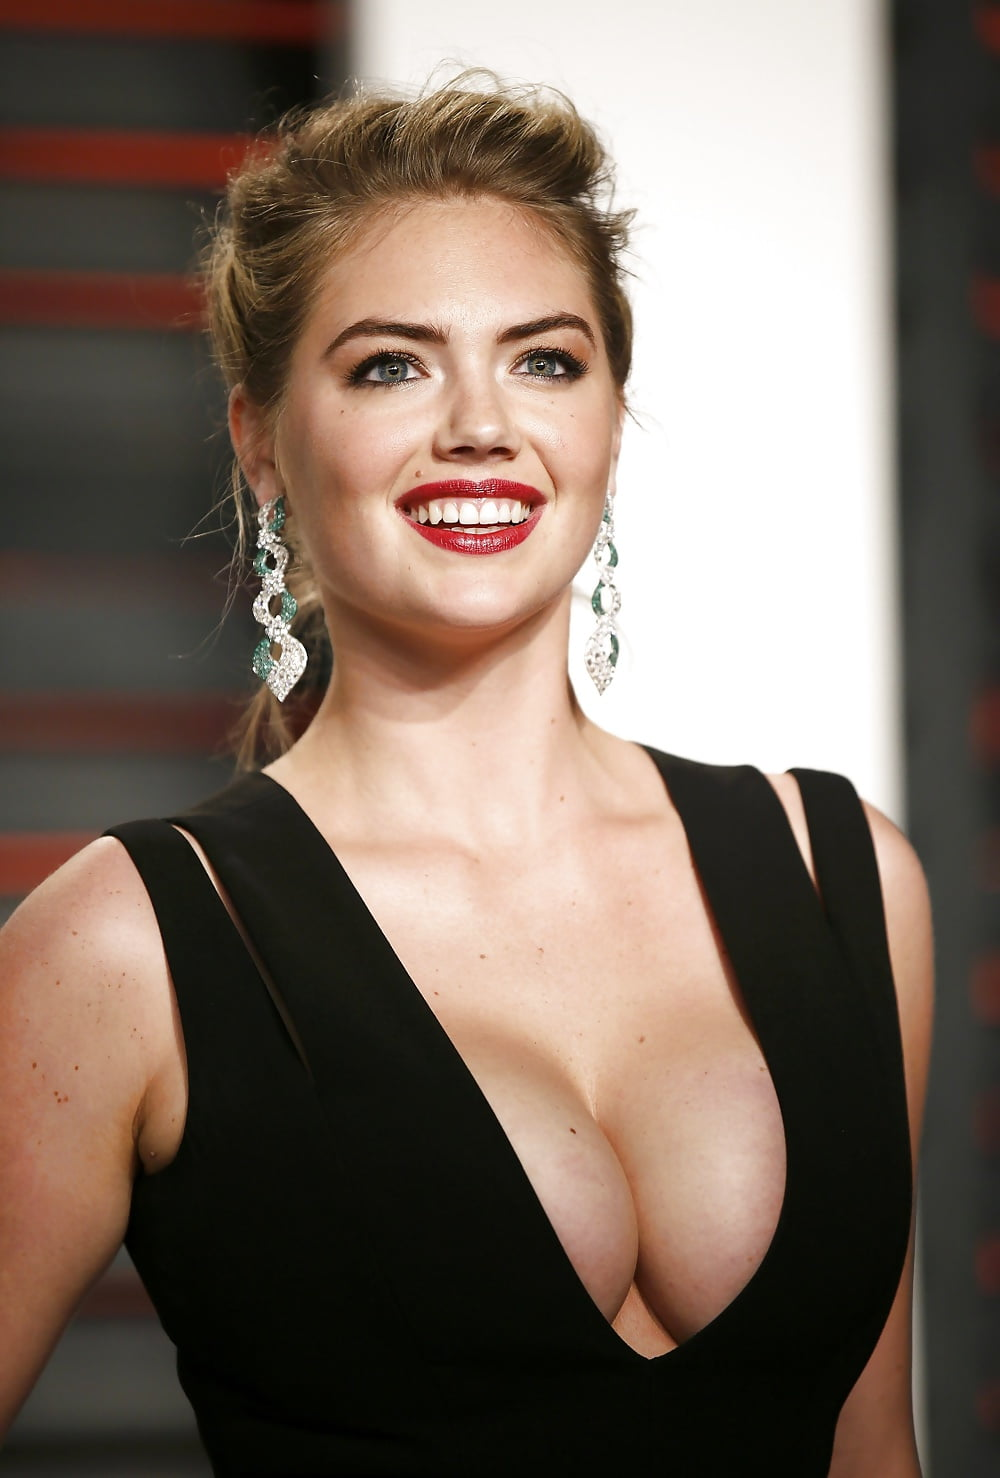 Top best boobs in hollywood of all times